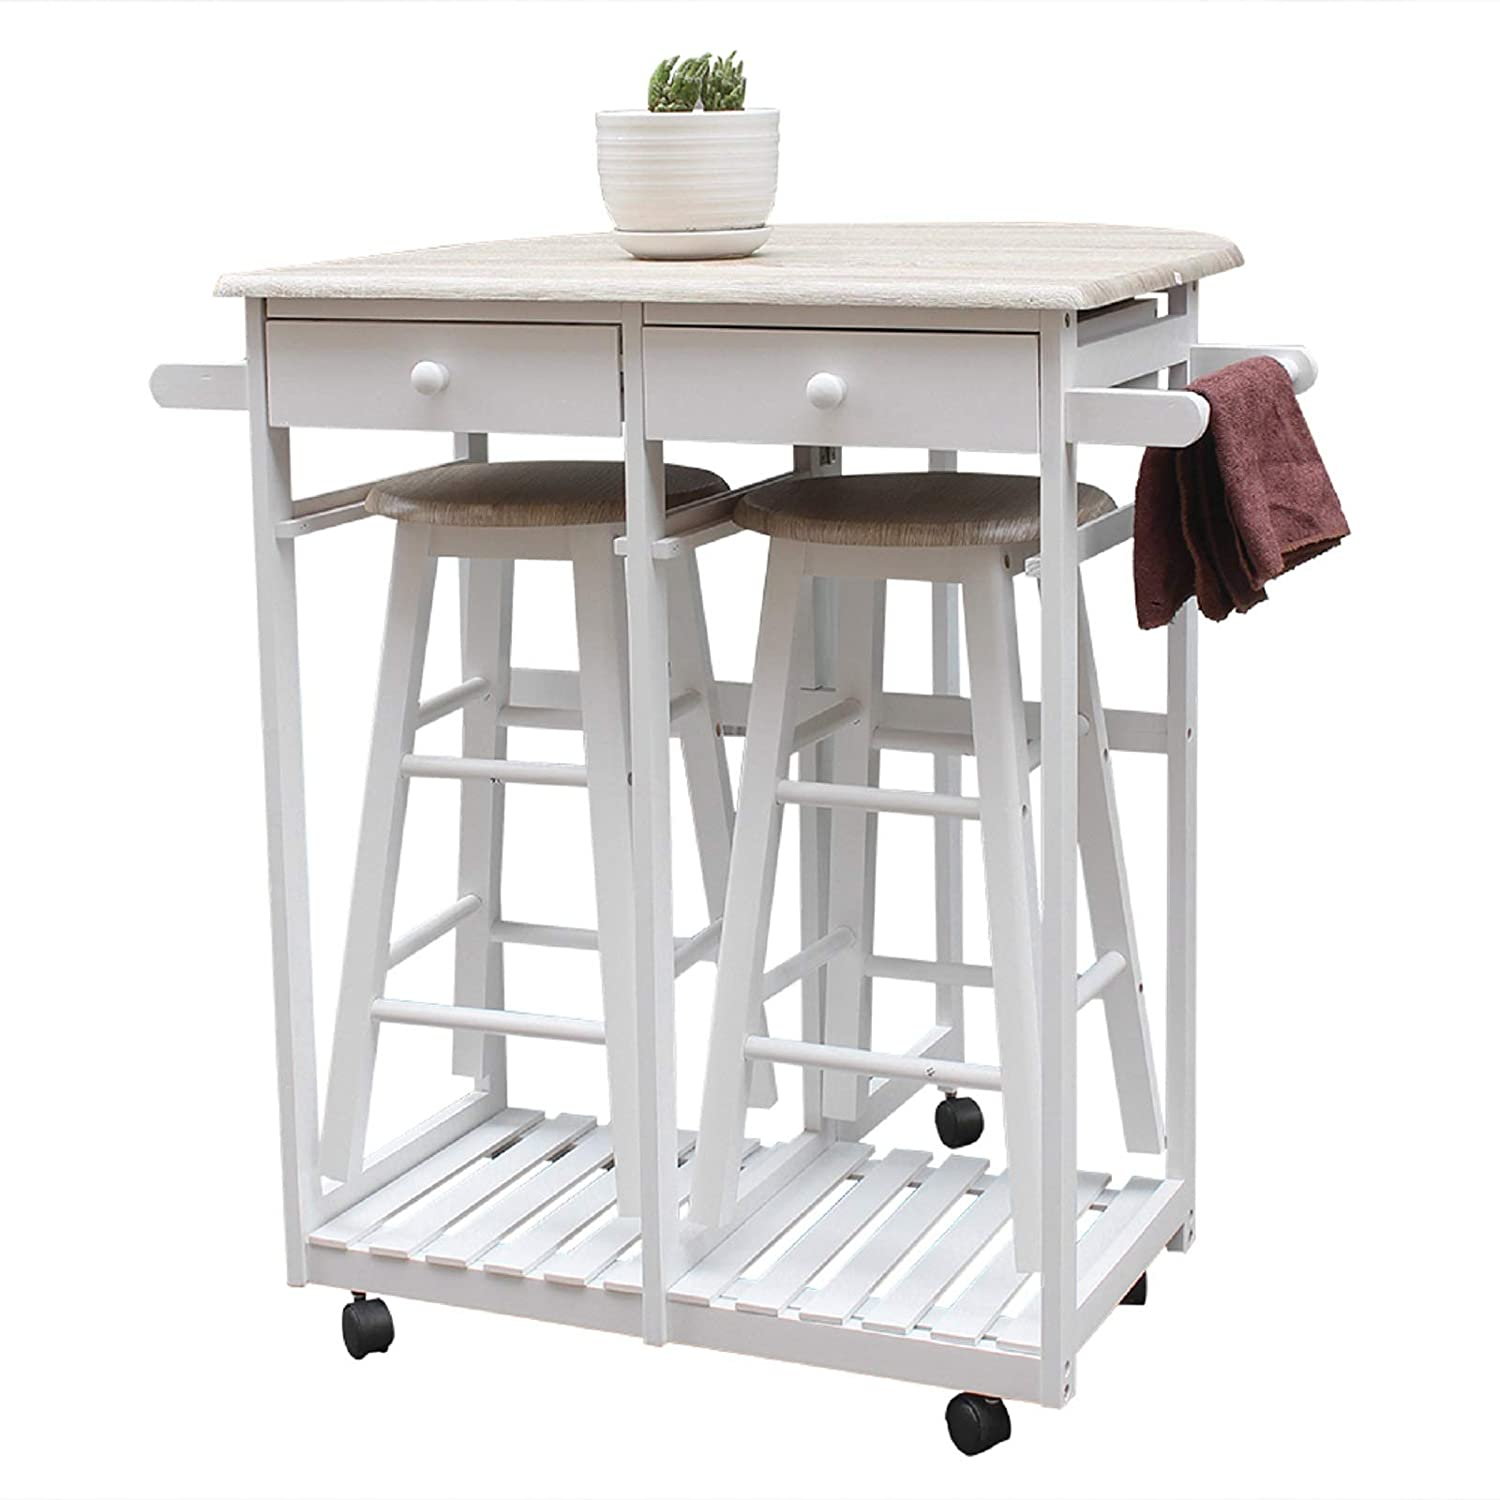 3 PCS Dining Table Set 1 Table and 2 Chairs Stools Home Restaurant Breakfast Bistro Pub Kitchen Folding Rolling Drop Leaf Island Trolley Kitchen Cart 2 Towel Hander Dining Room Home Kitchen Furniture